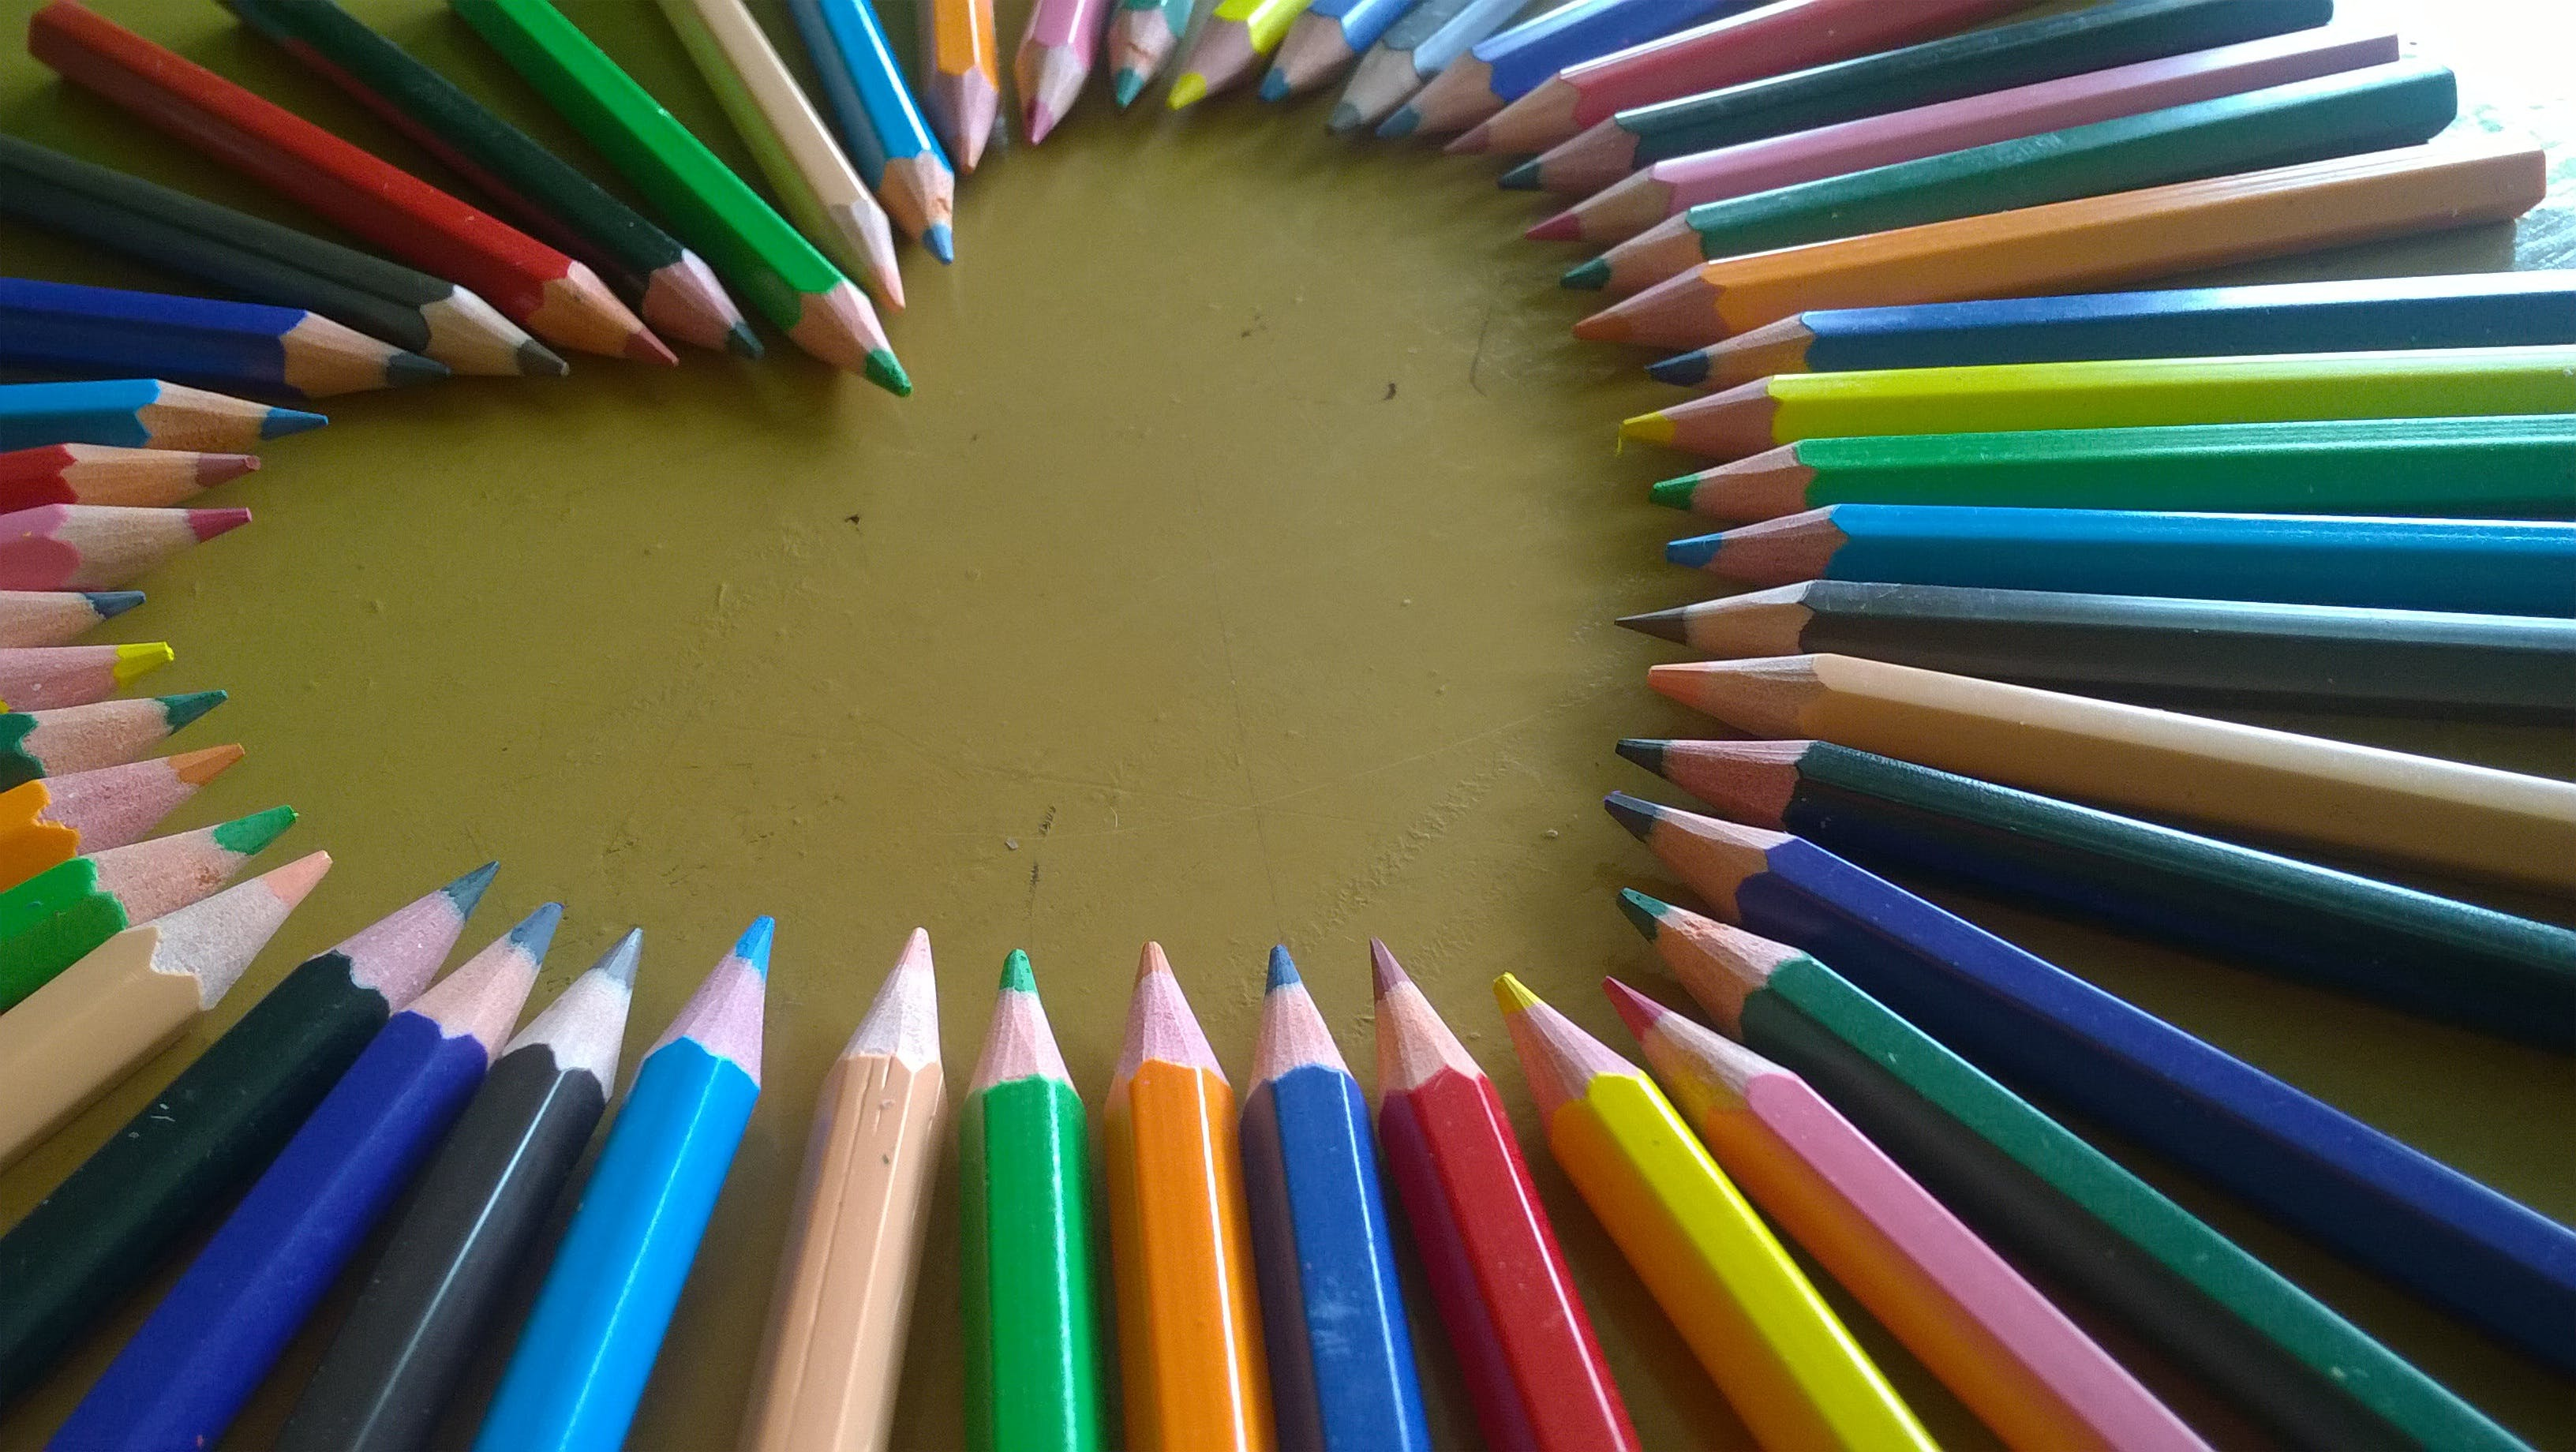 Heart Form Using Colored Pencils